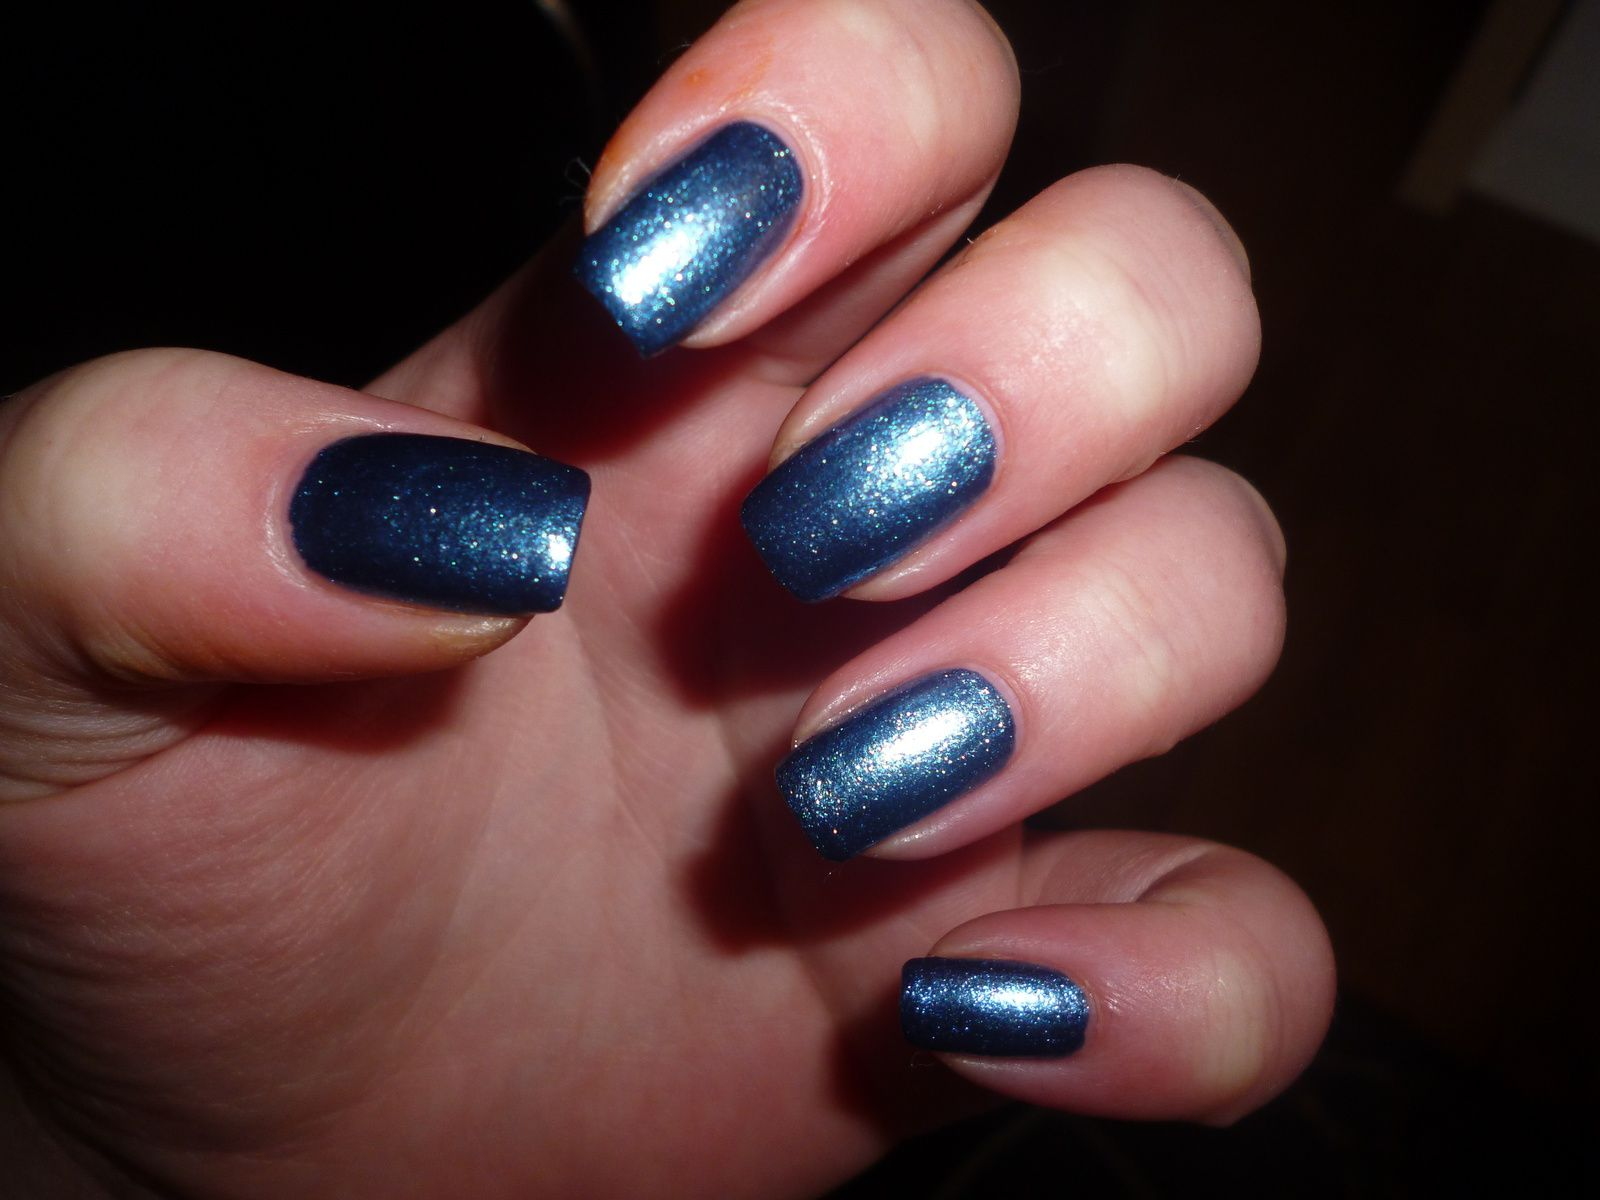 MY EXTREM VERNIS ROYAL ROCK'S-Beautynails